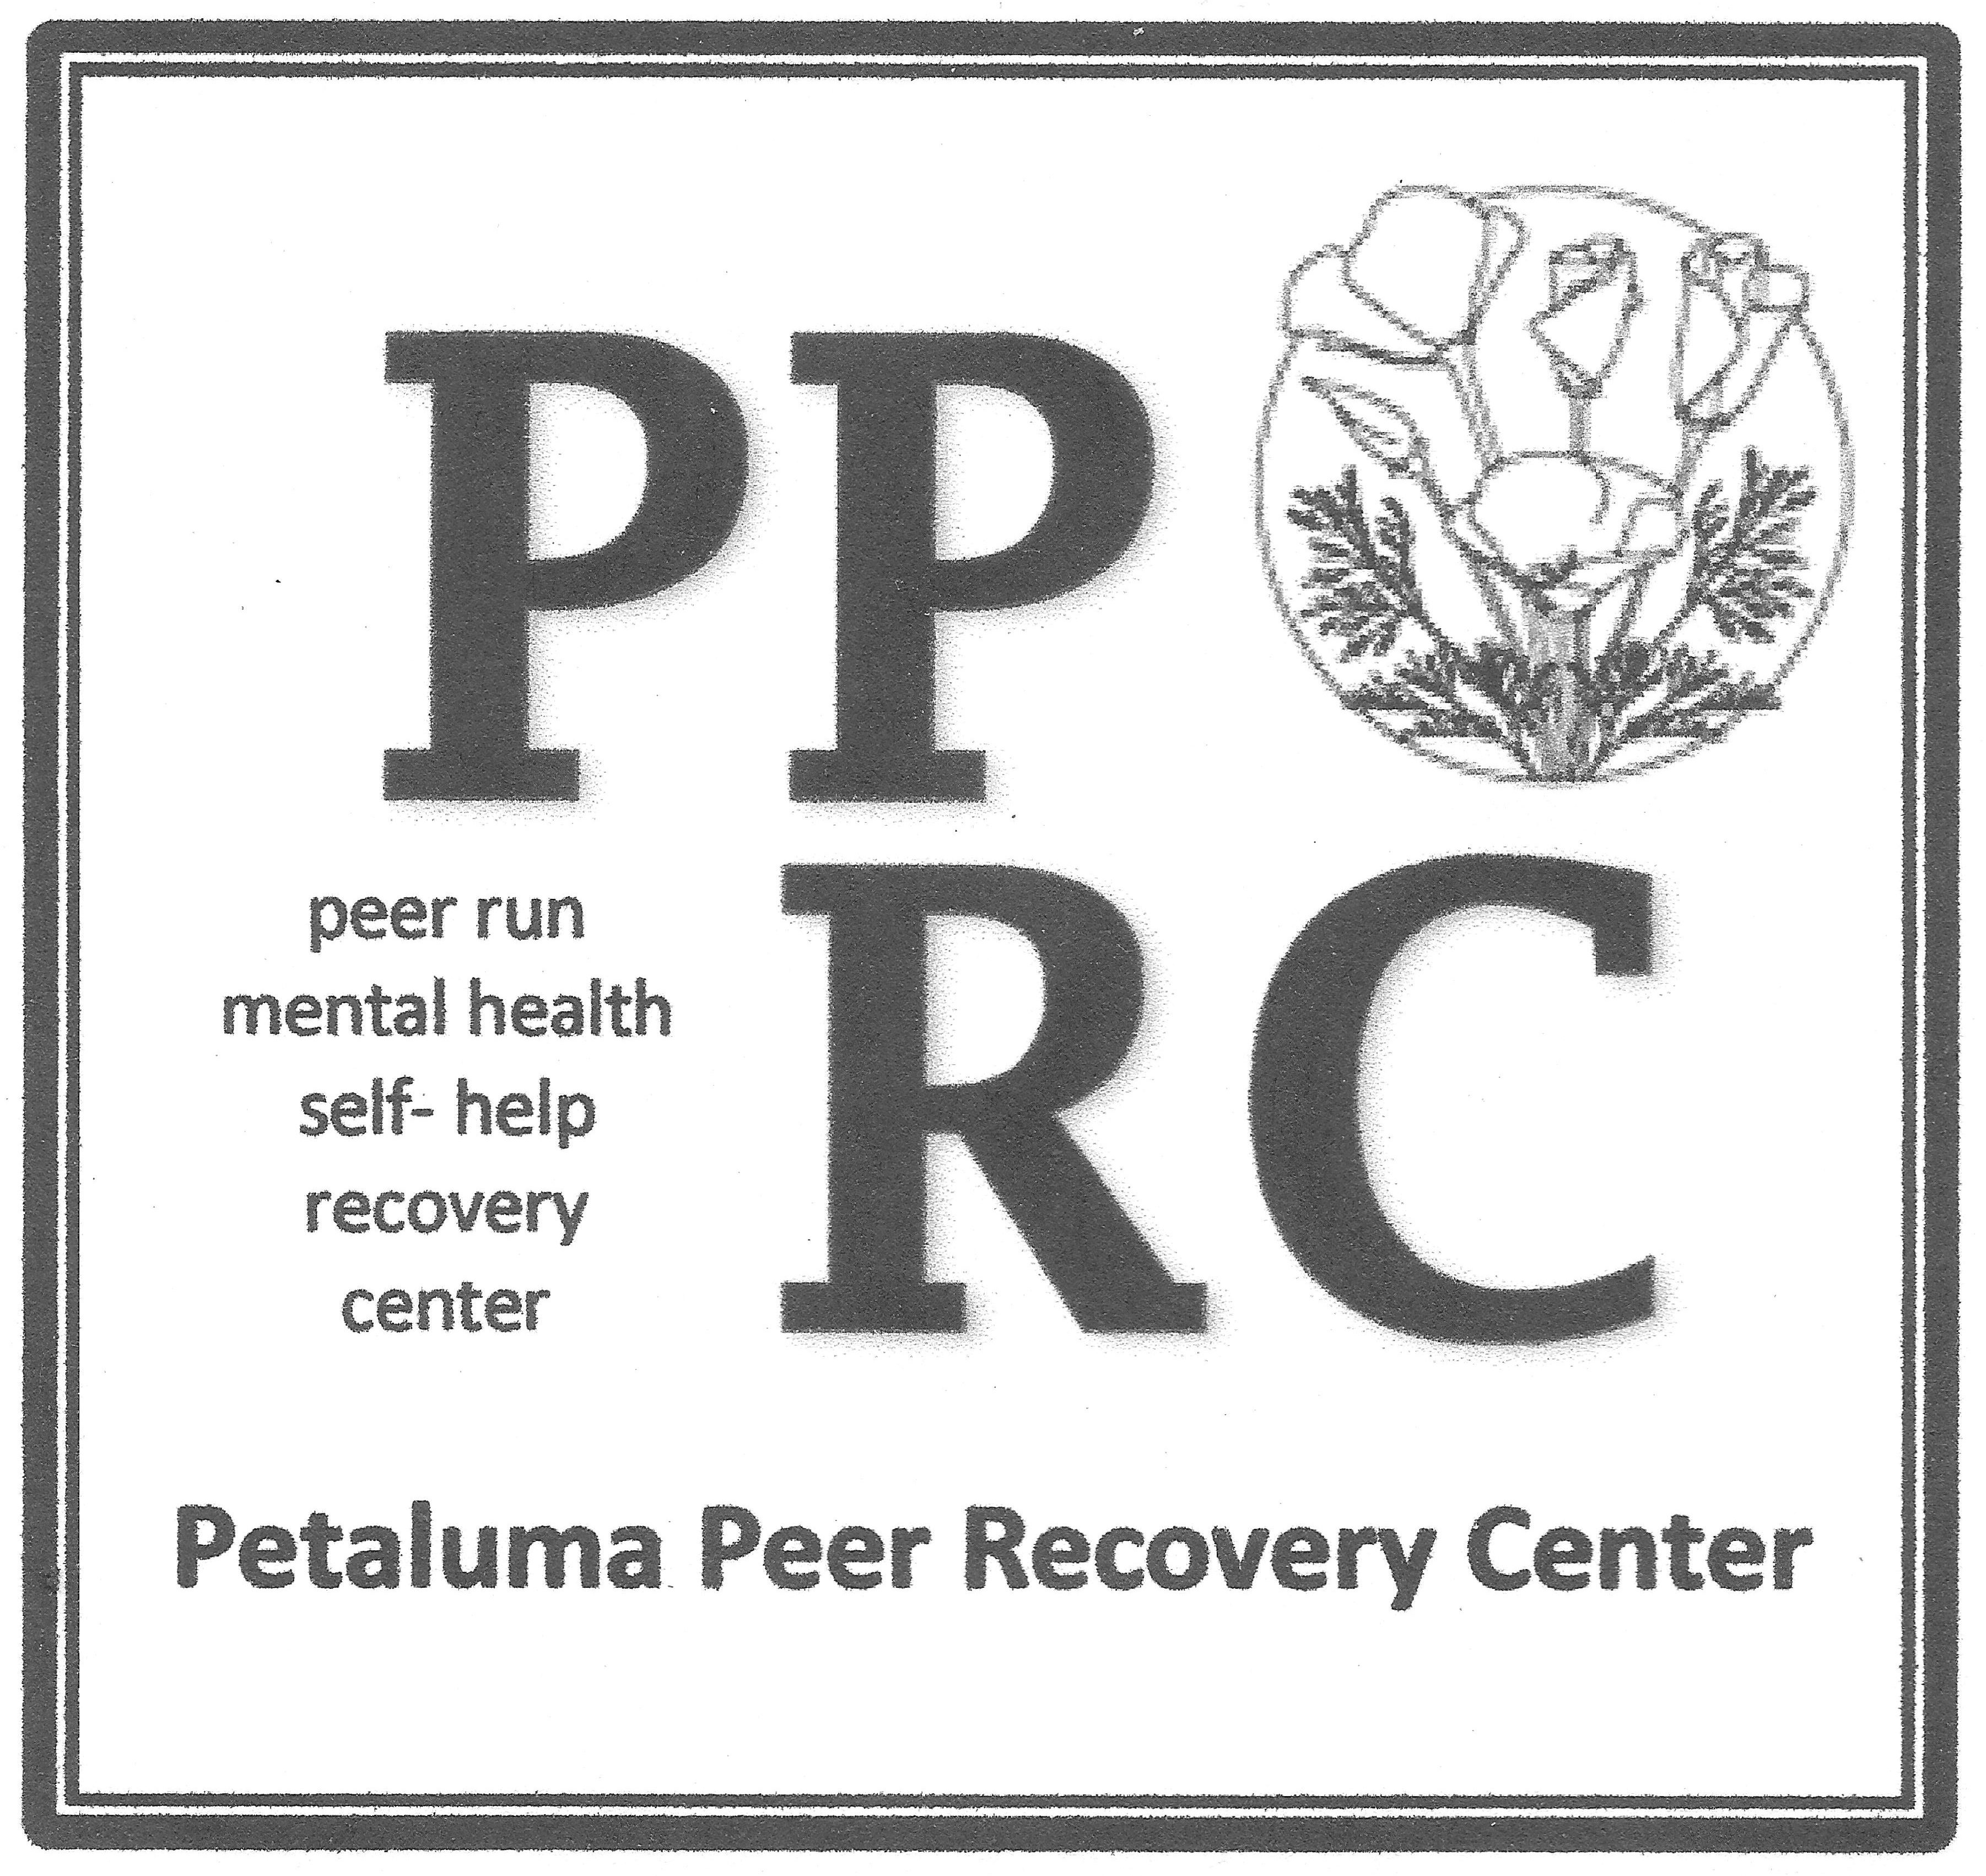 Petaluma Peer Recovery Center